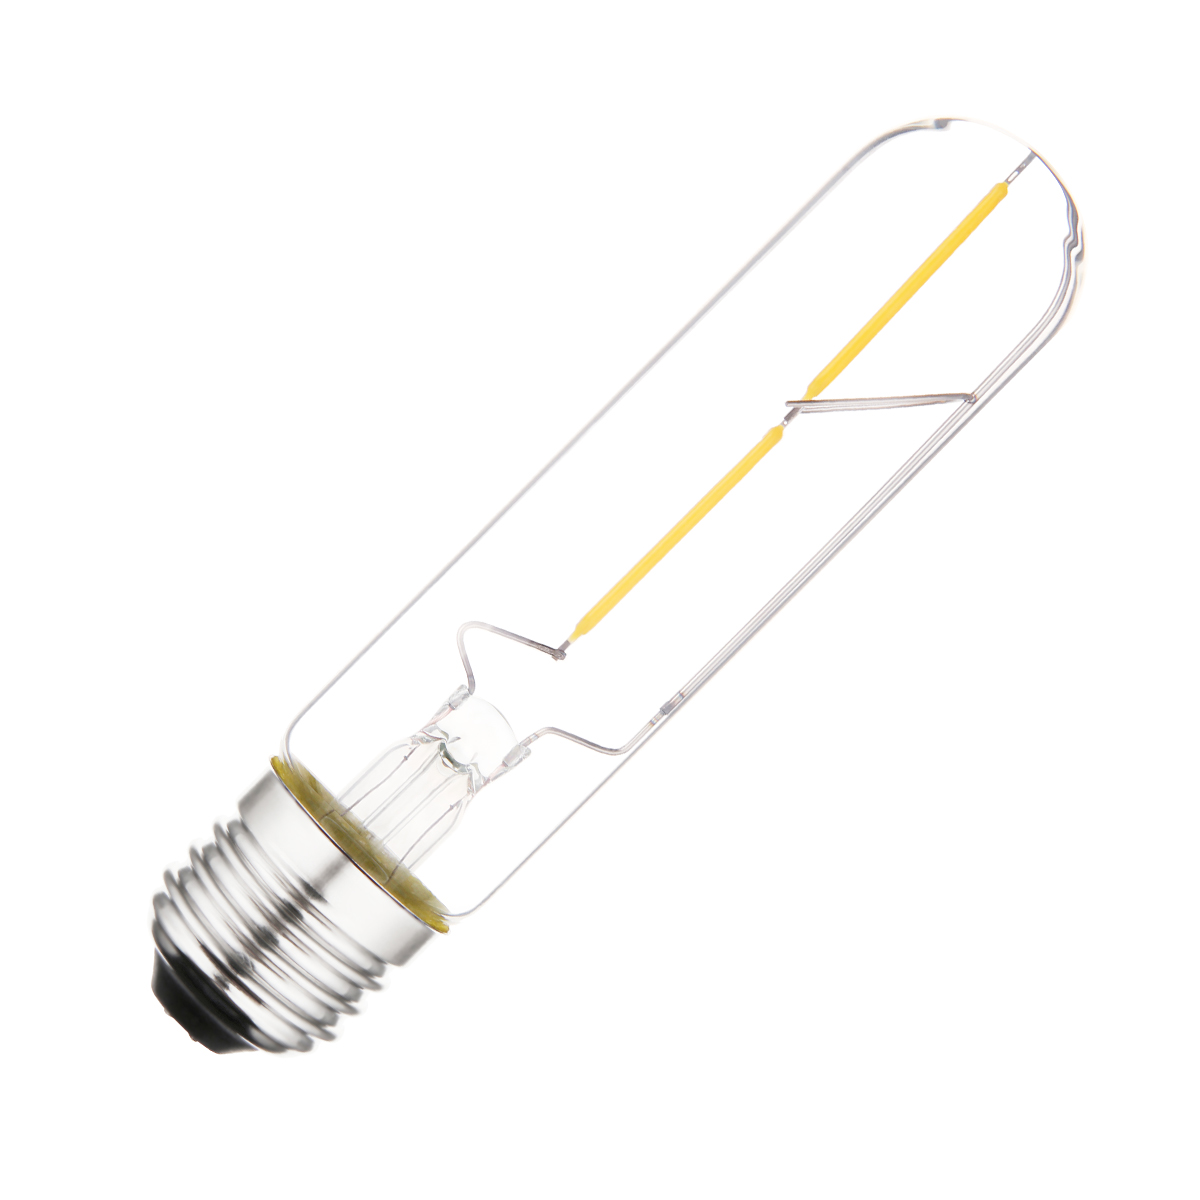 T10 Led Light Bulbs